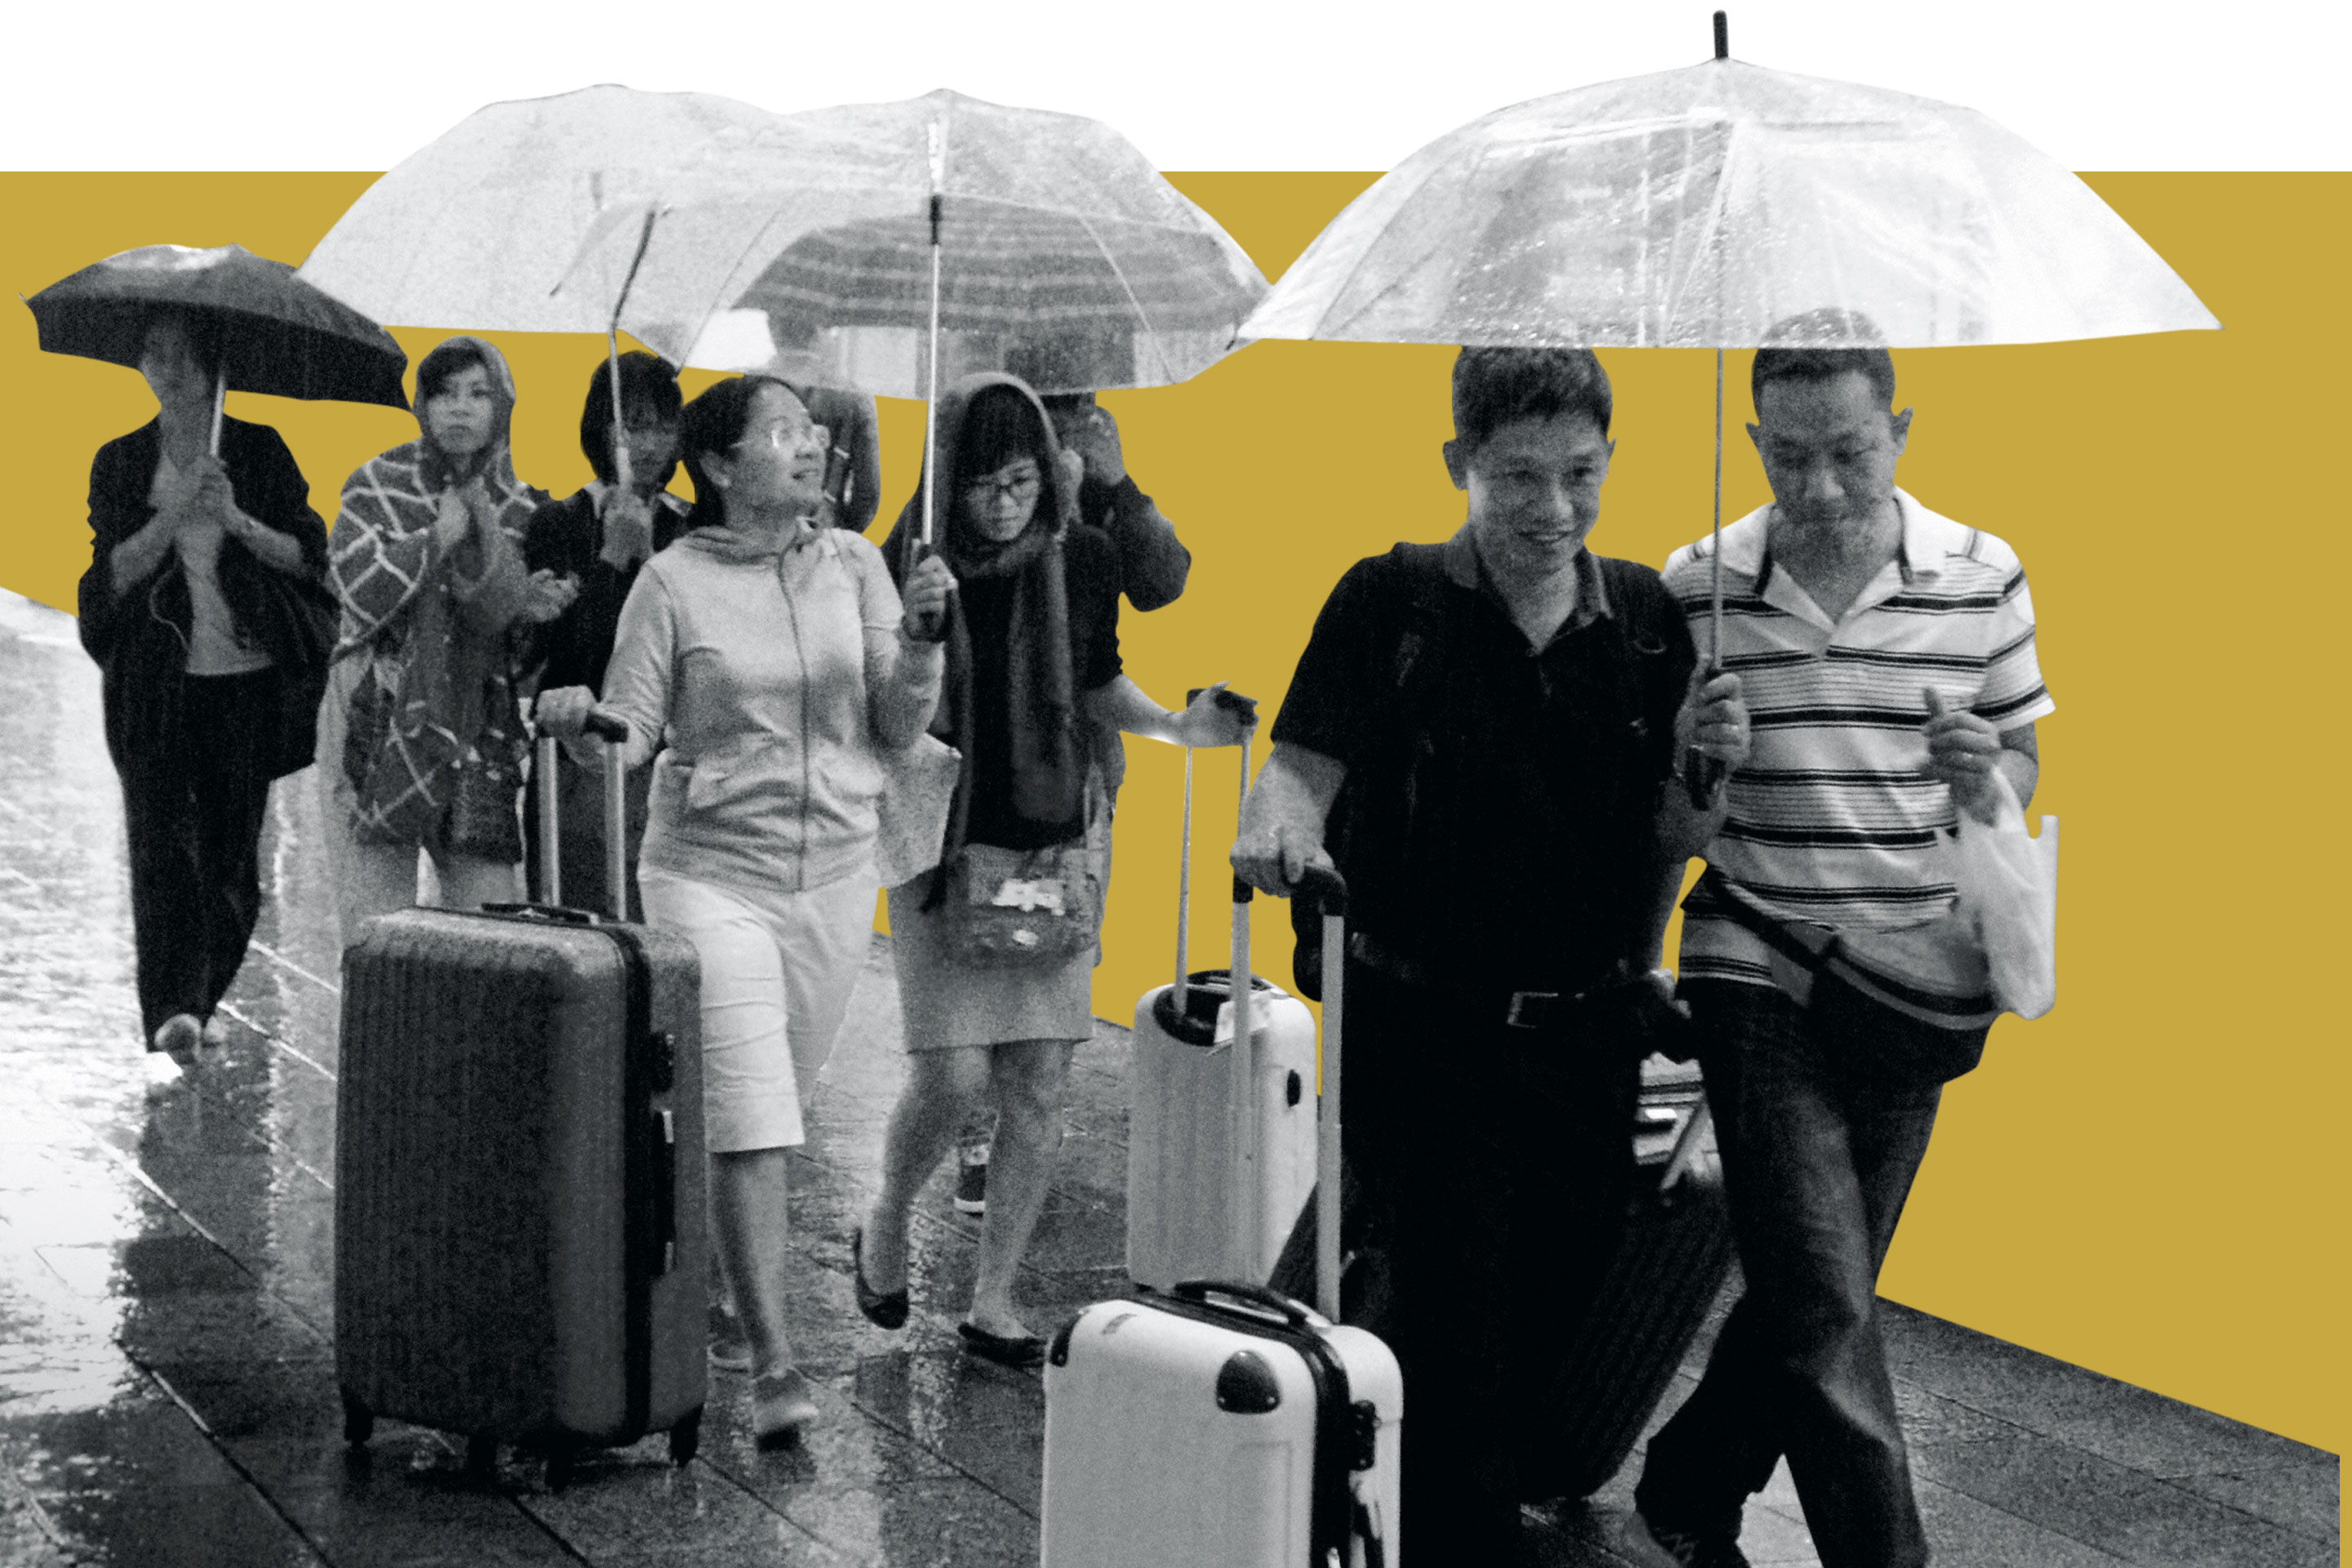 Chinese sightseers brave the elements but heed Beijing's travel warnings.